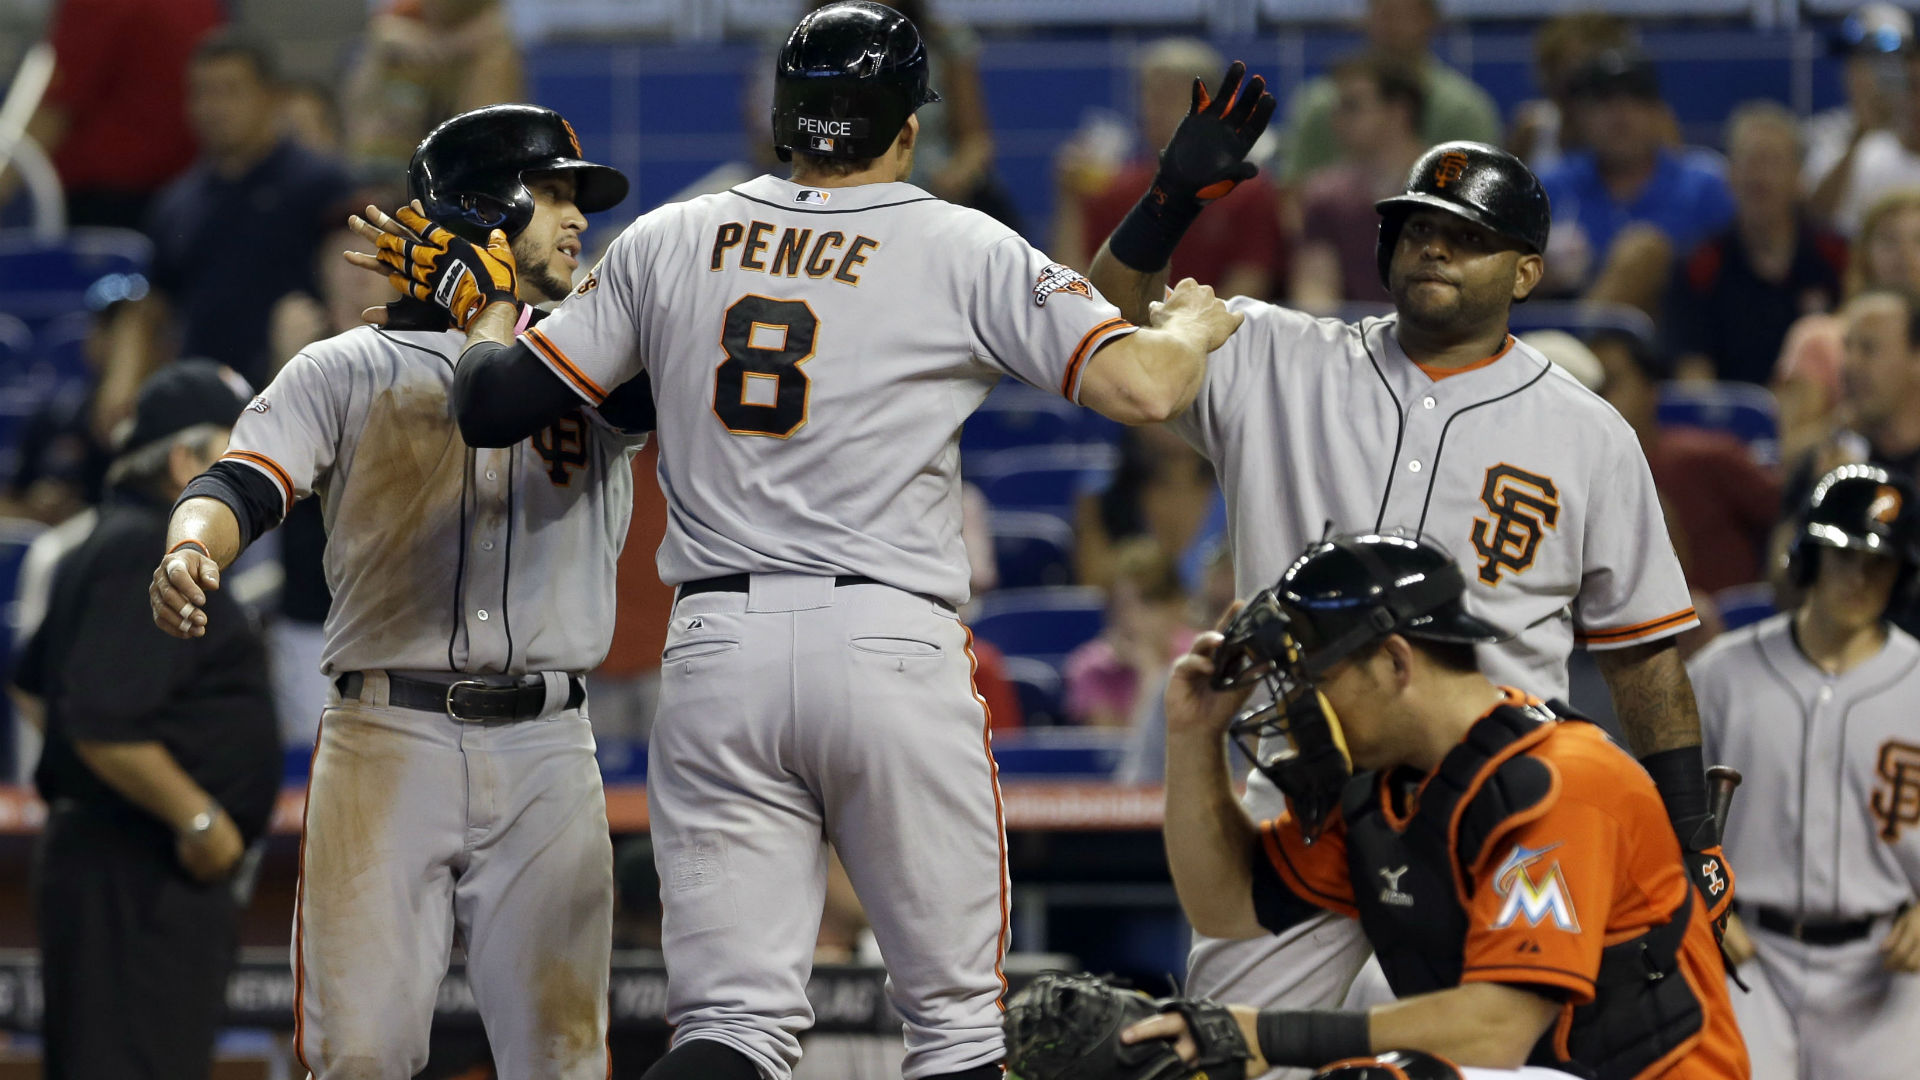 Hunter_Pence_020614_FTR_AP